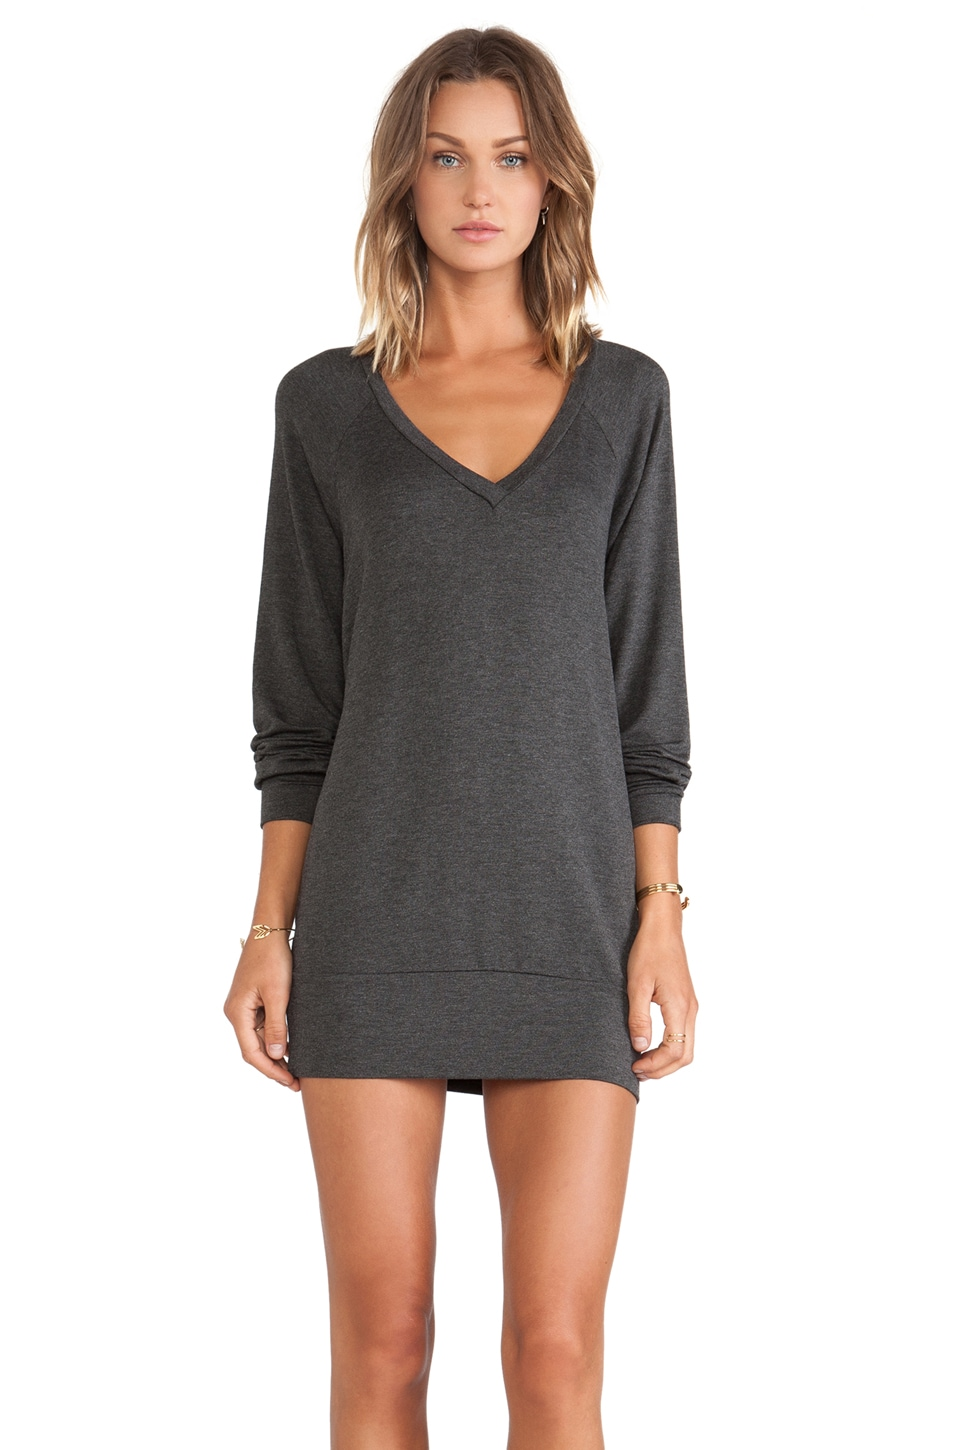 Riller & Fount Emma Sweatshirt Tunic in Stud